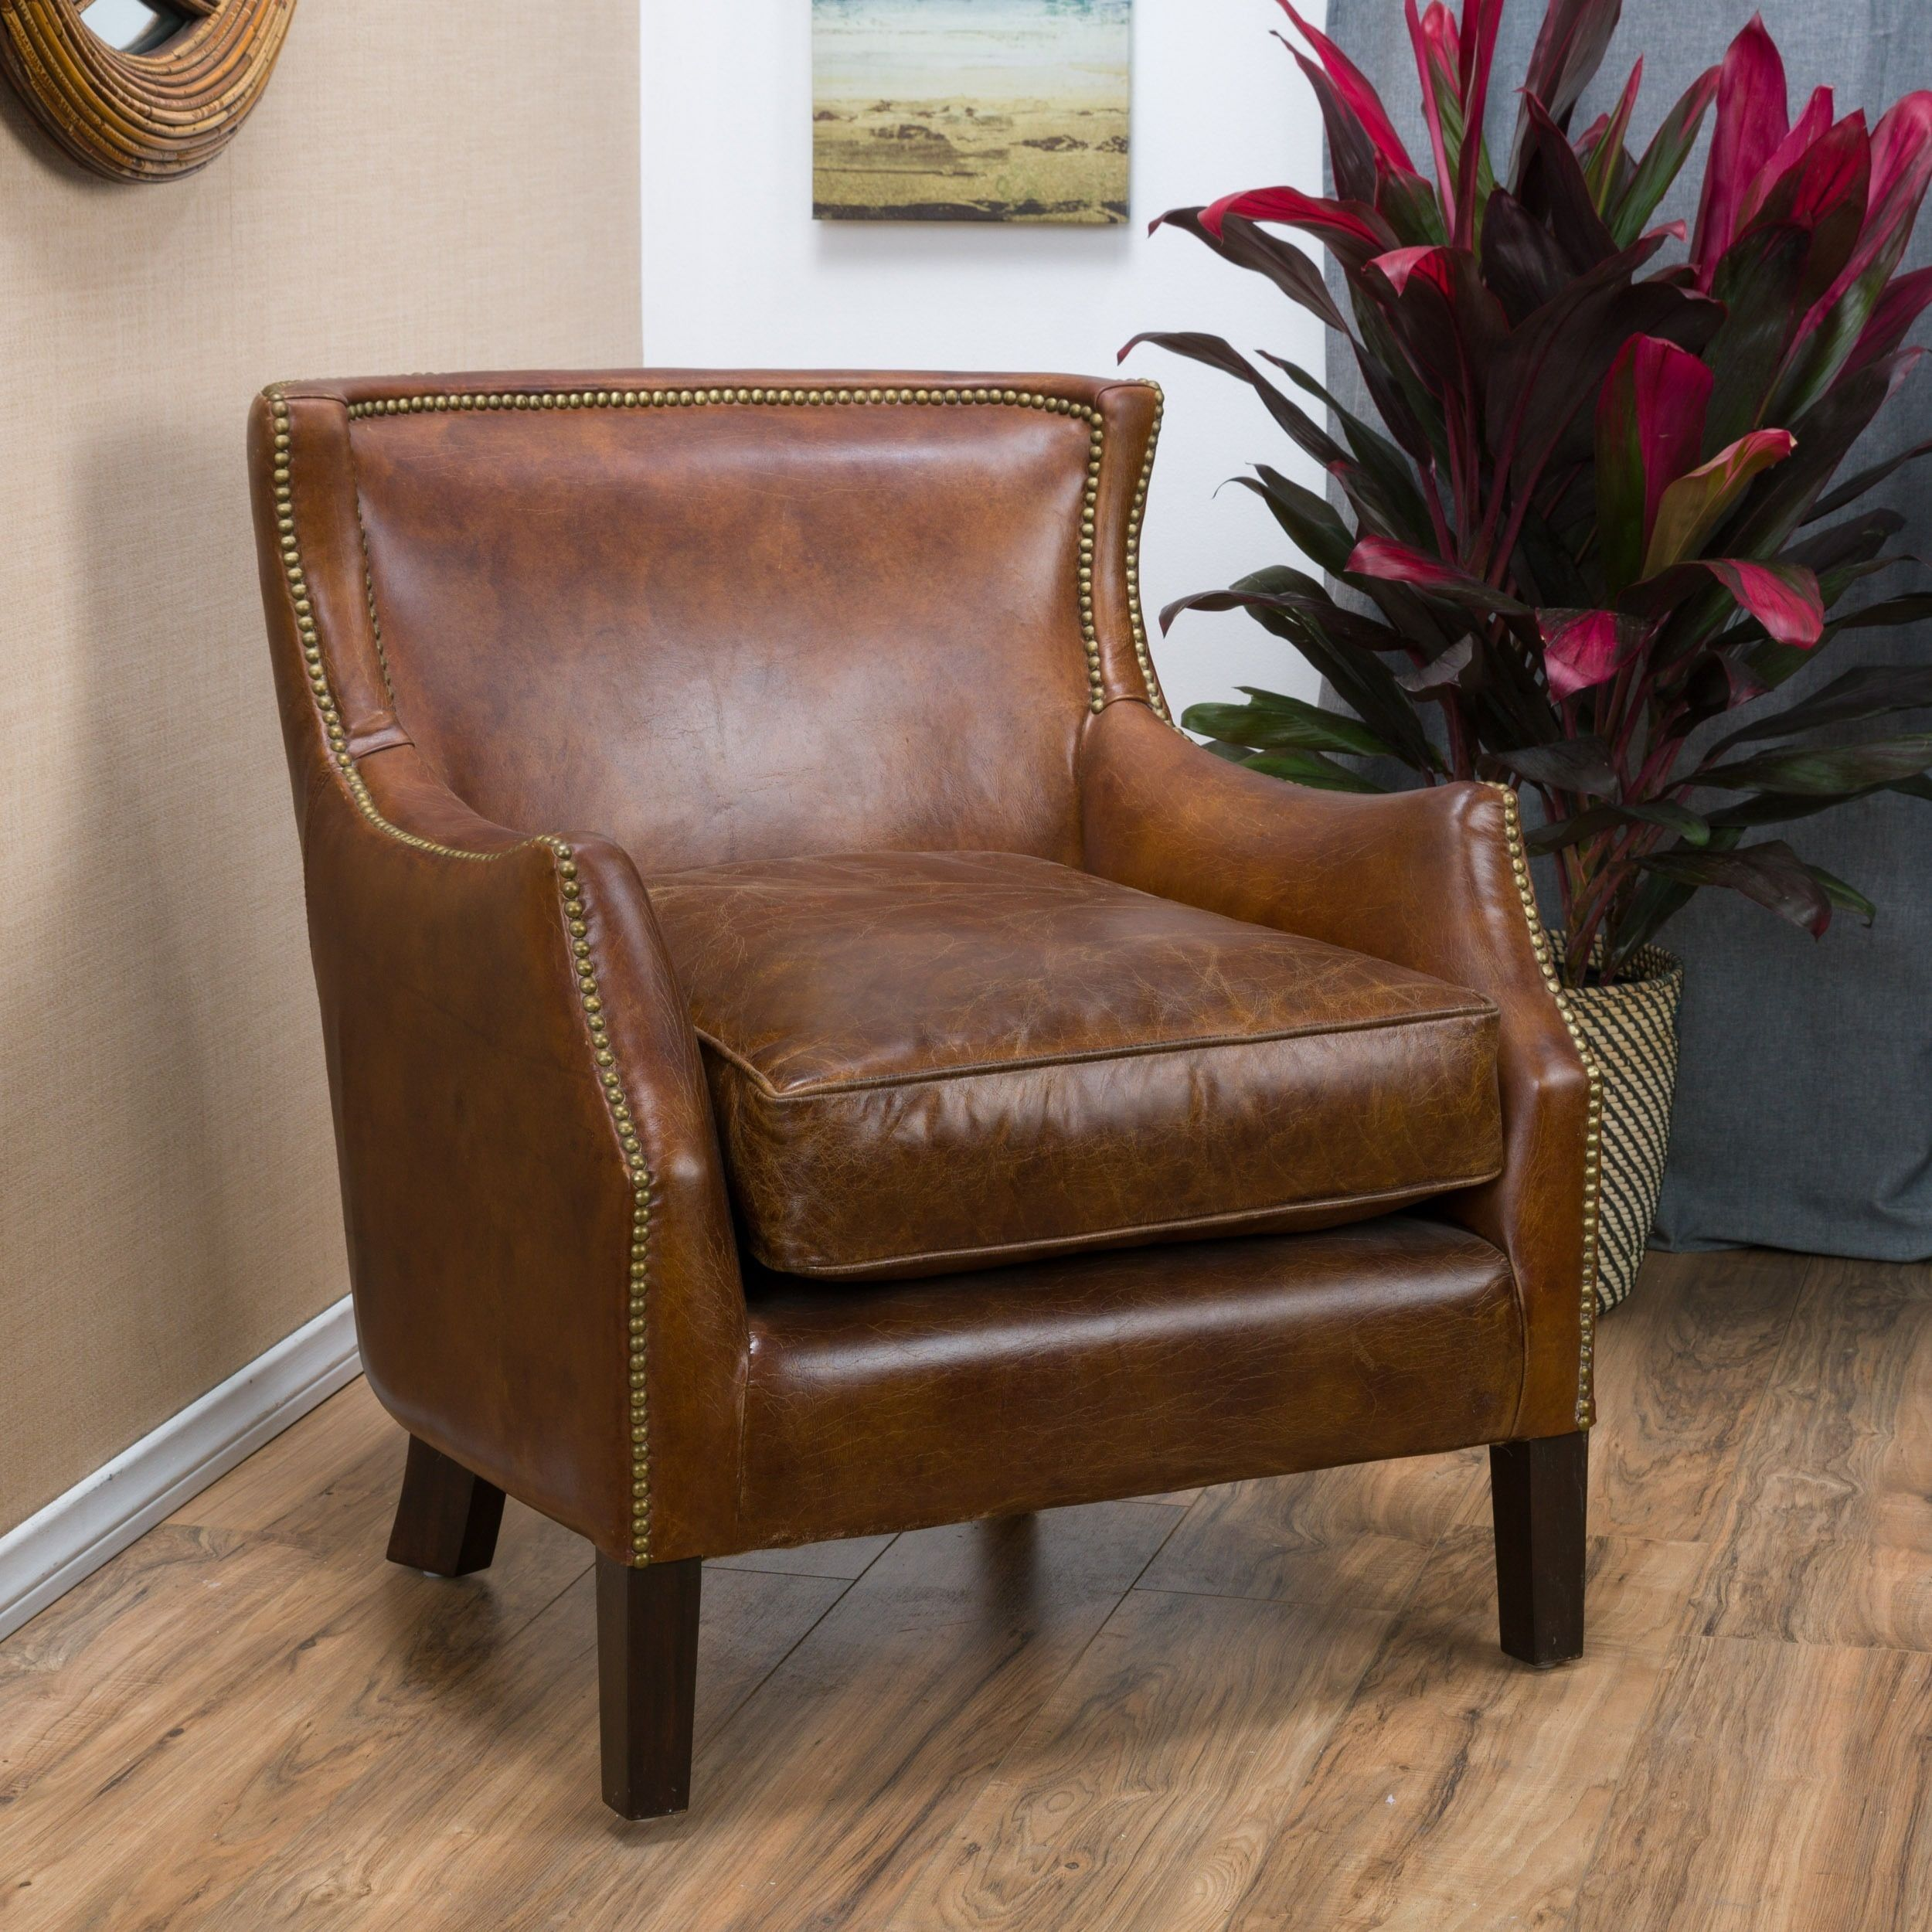 Good Leather Chairs Home Goods: Free Shipping On Orders Over $45 At  Overstock.com